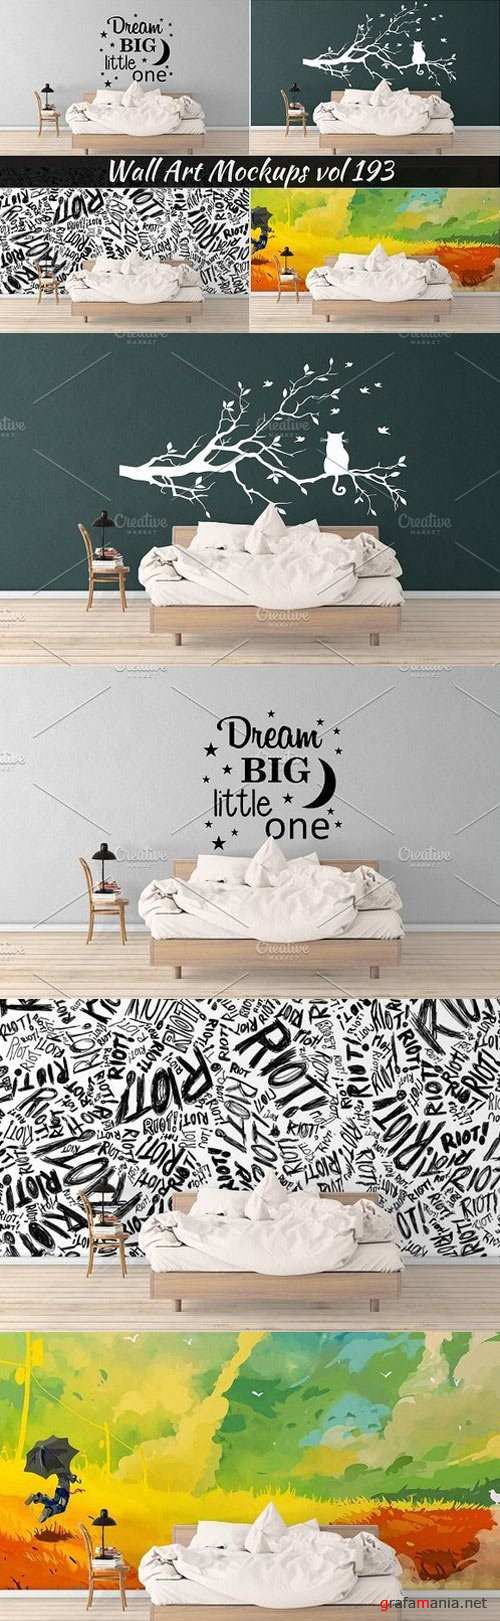 Wall Mockup - Sticker Mockup Vol 193 - 1121559